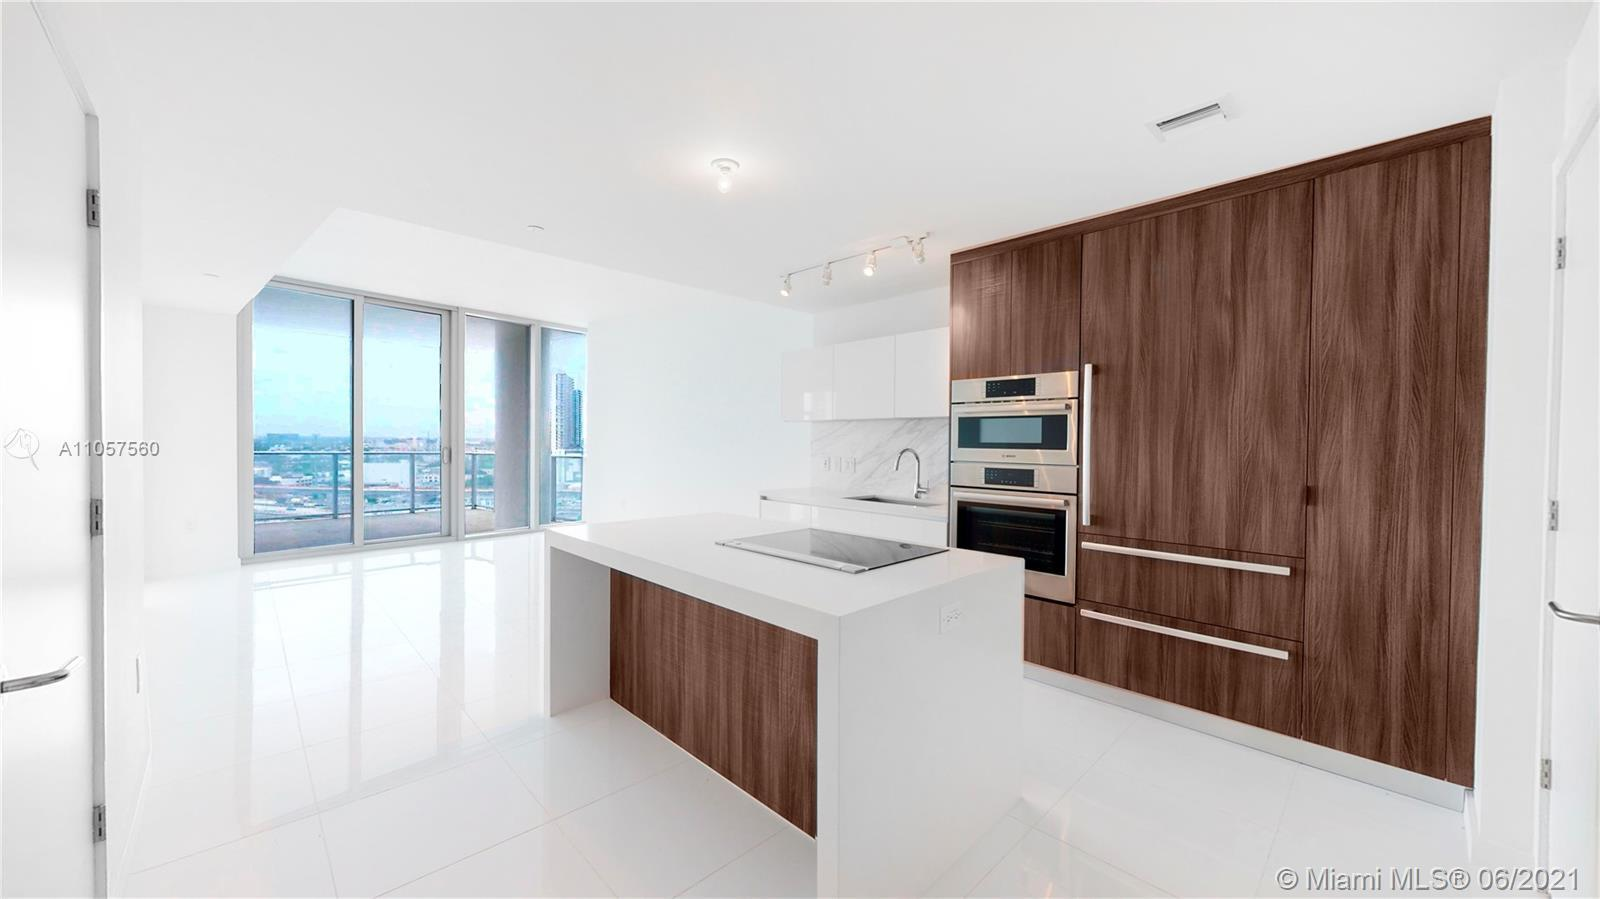 Beautiful and spacious unit in the most desirable building, Paramount Miami World Center. Top-of-th